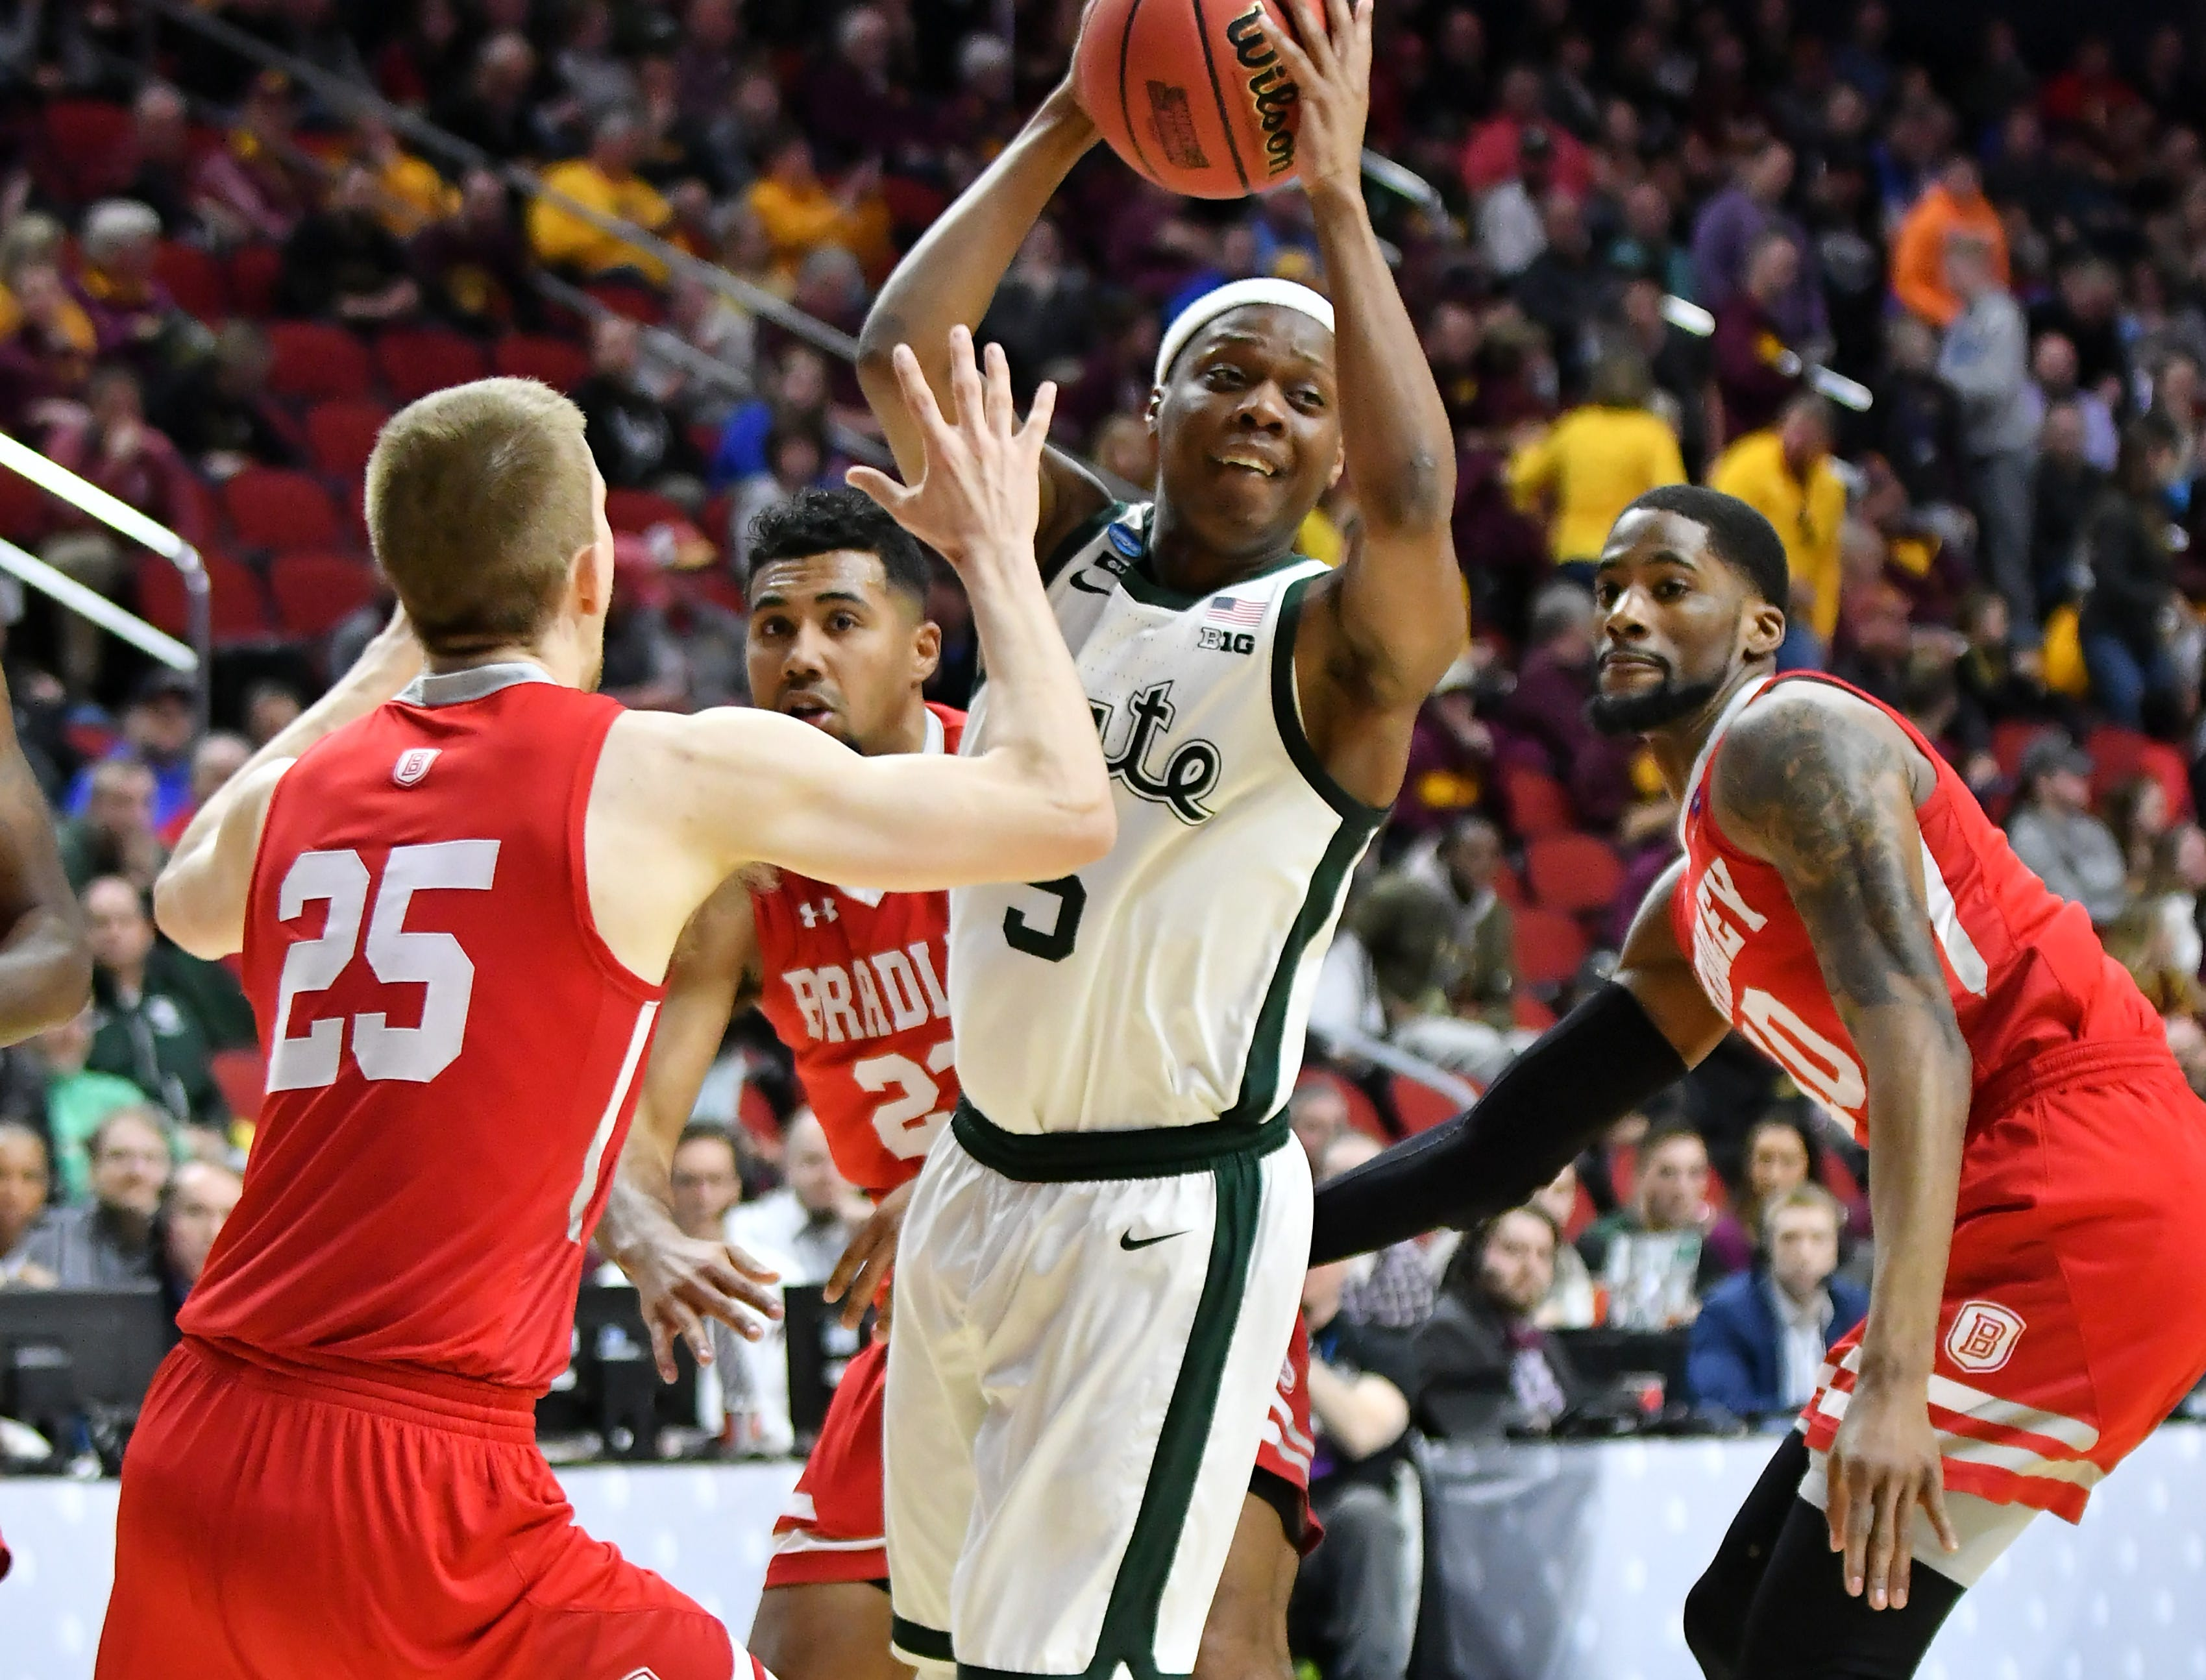 Bradley defenders, from left, Nate Kennell, Dwayne Lautier-Ogunleye and Elijah Childs converge on Michigan State guard Cassius Winston (5)  in the first half.